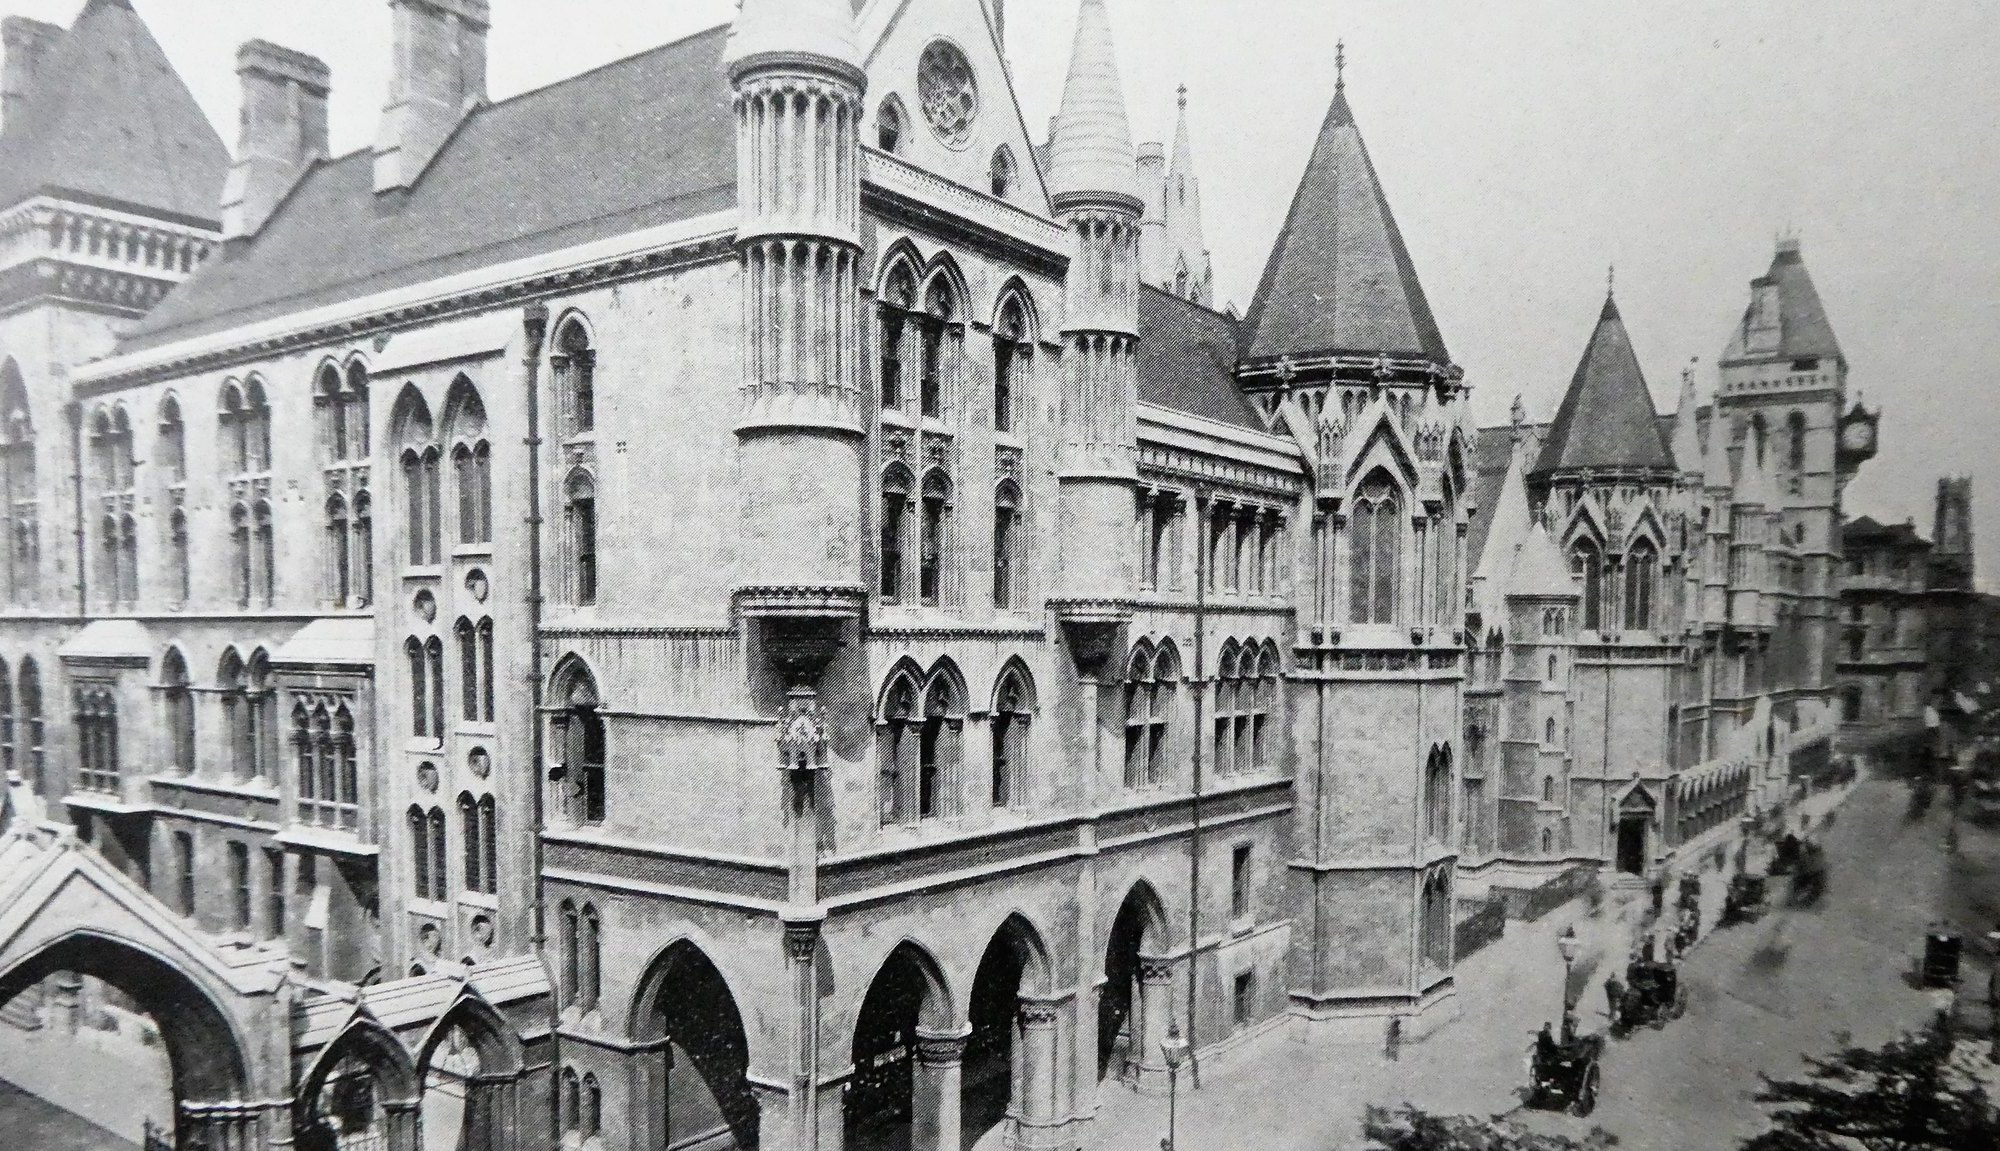 Royal Courts of Justice in 1909